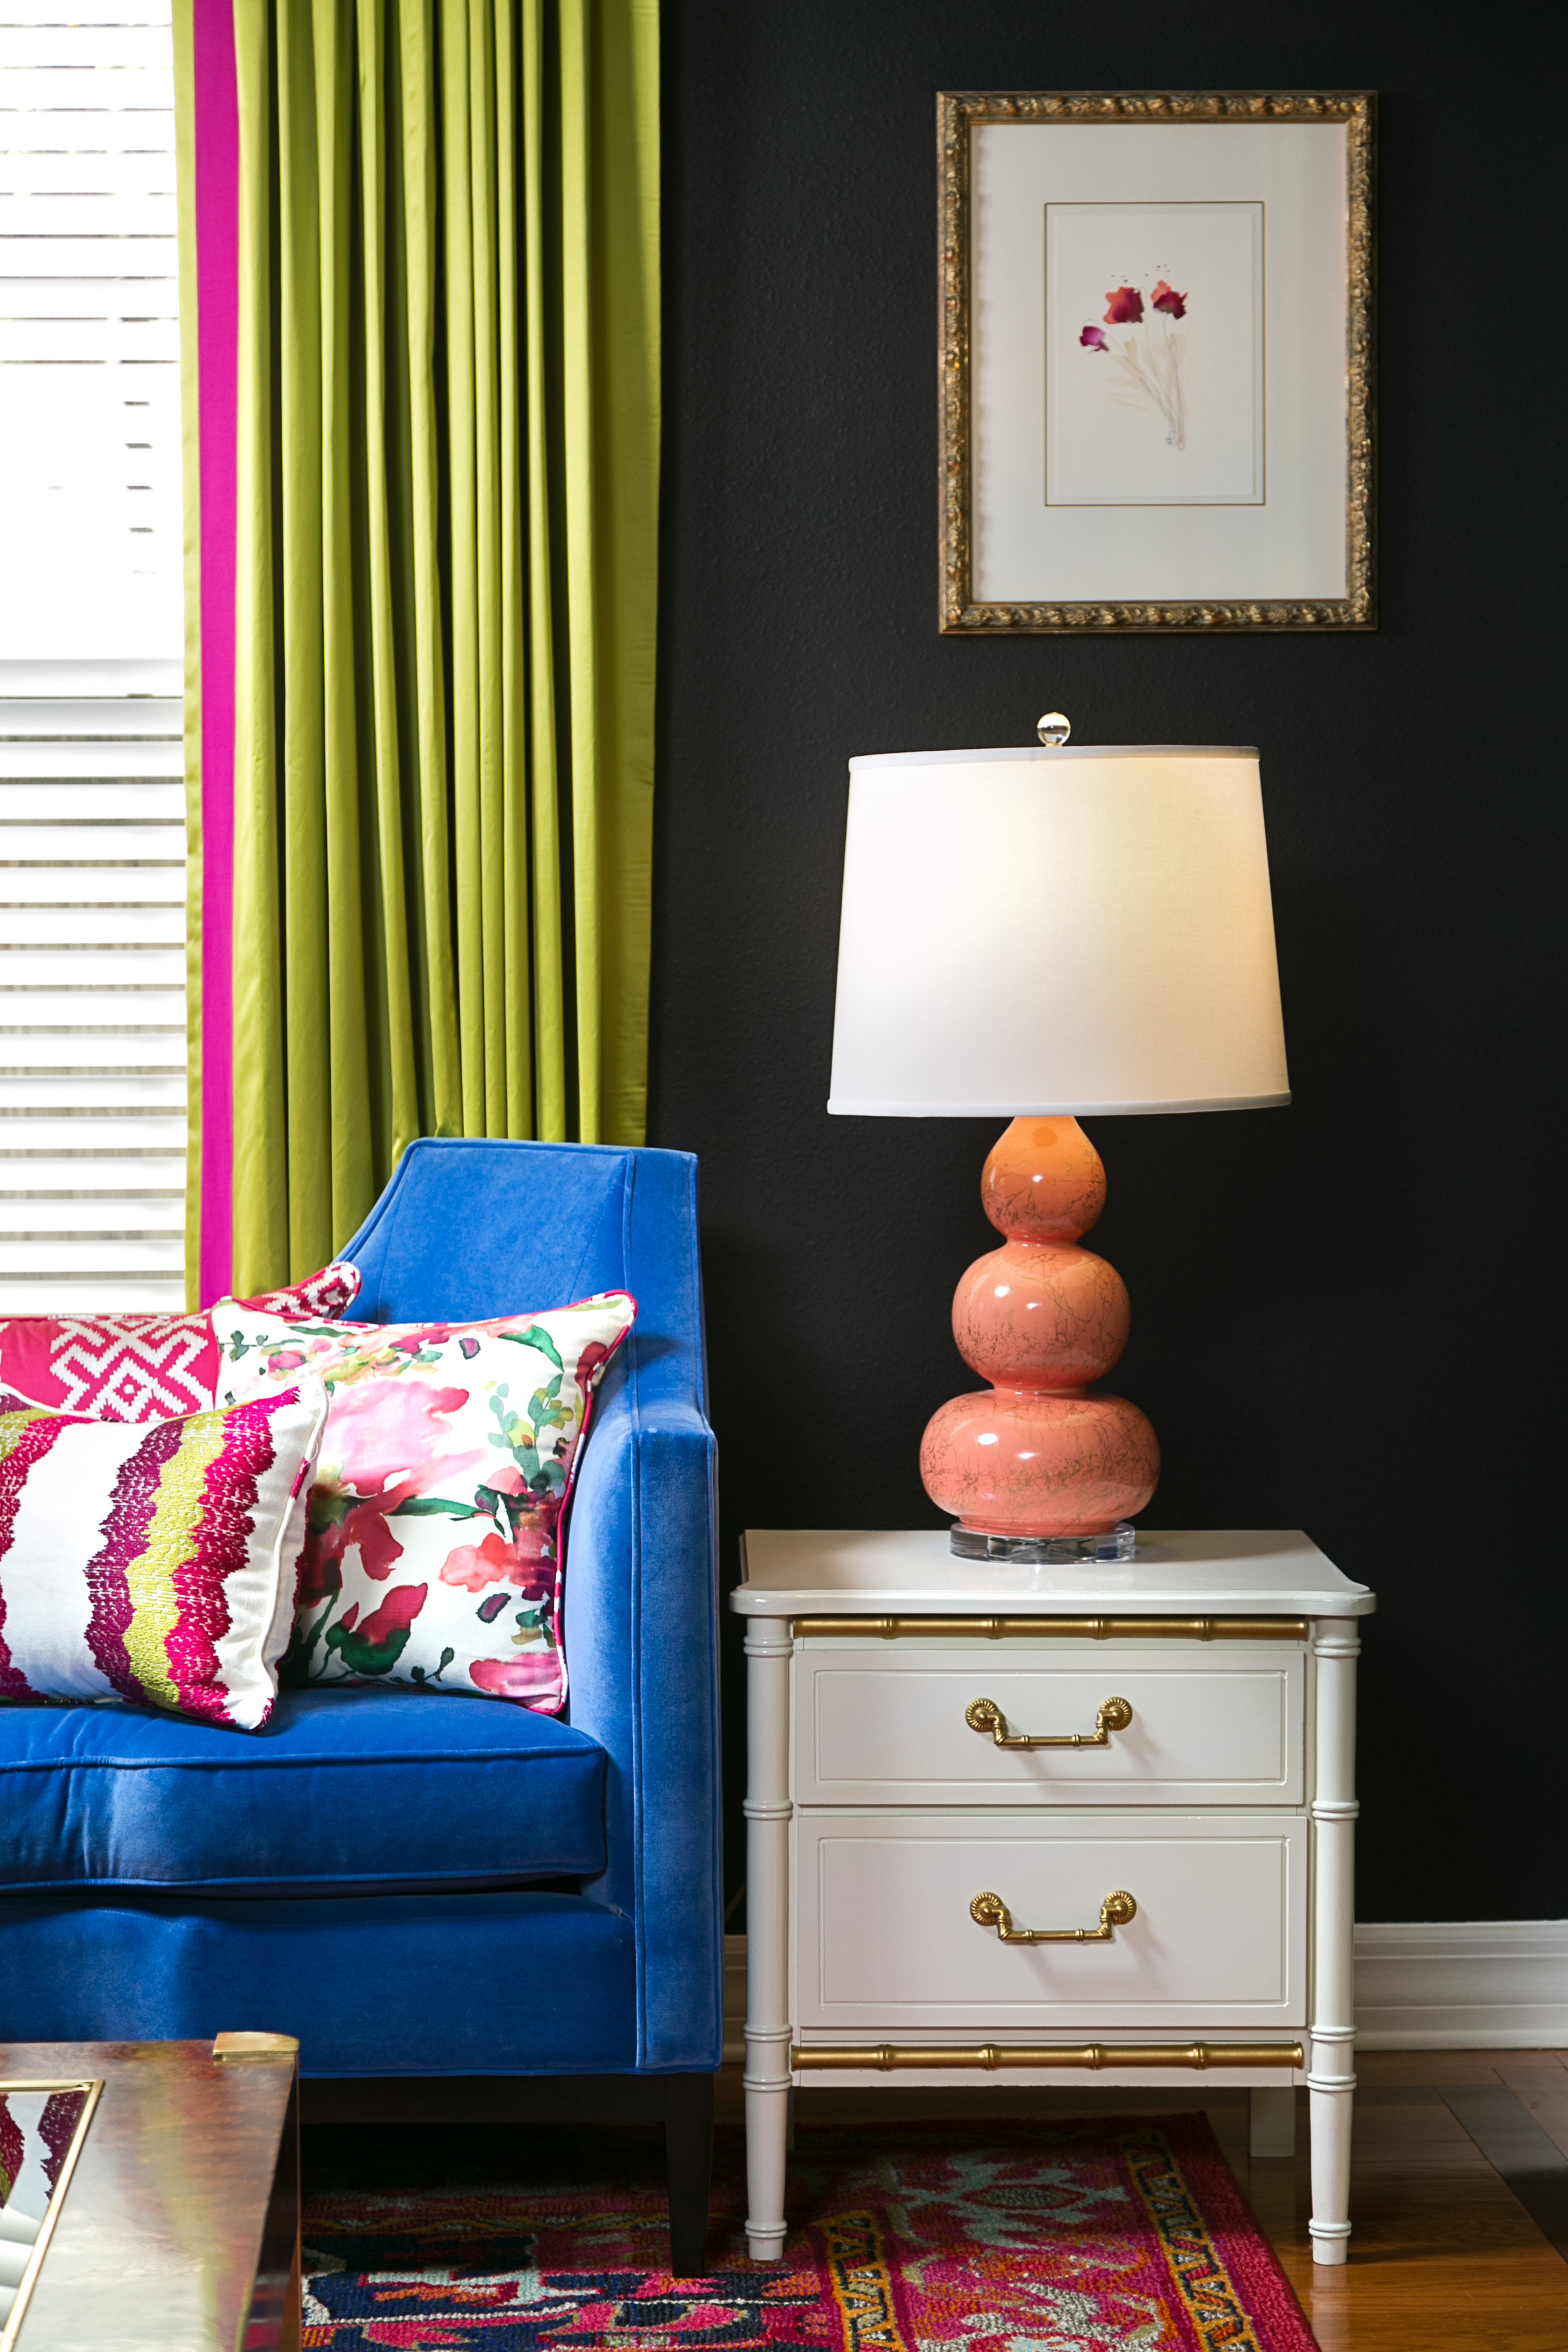 chic_colorful living room_lisagilmoredesign